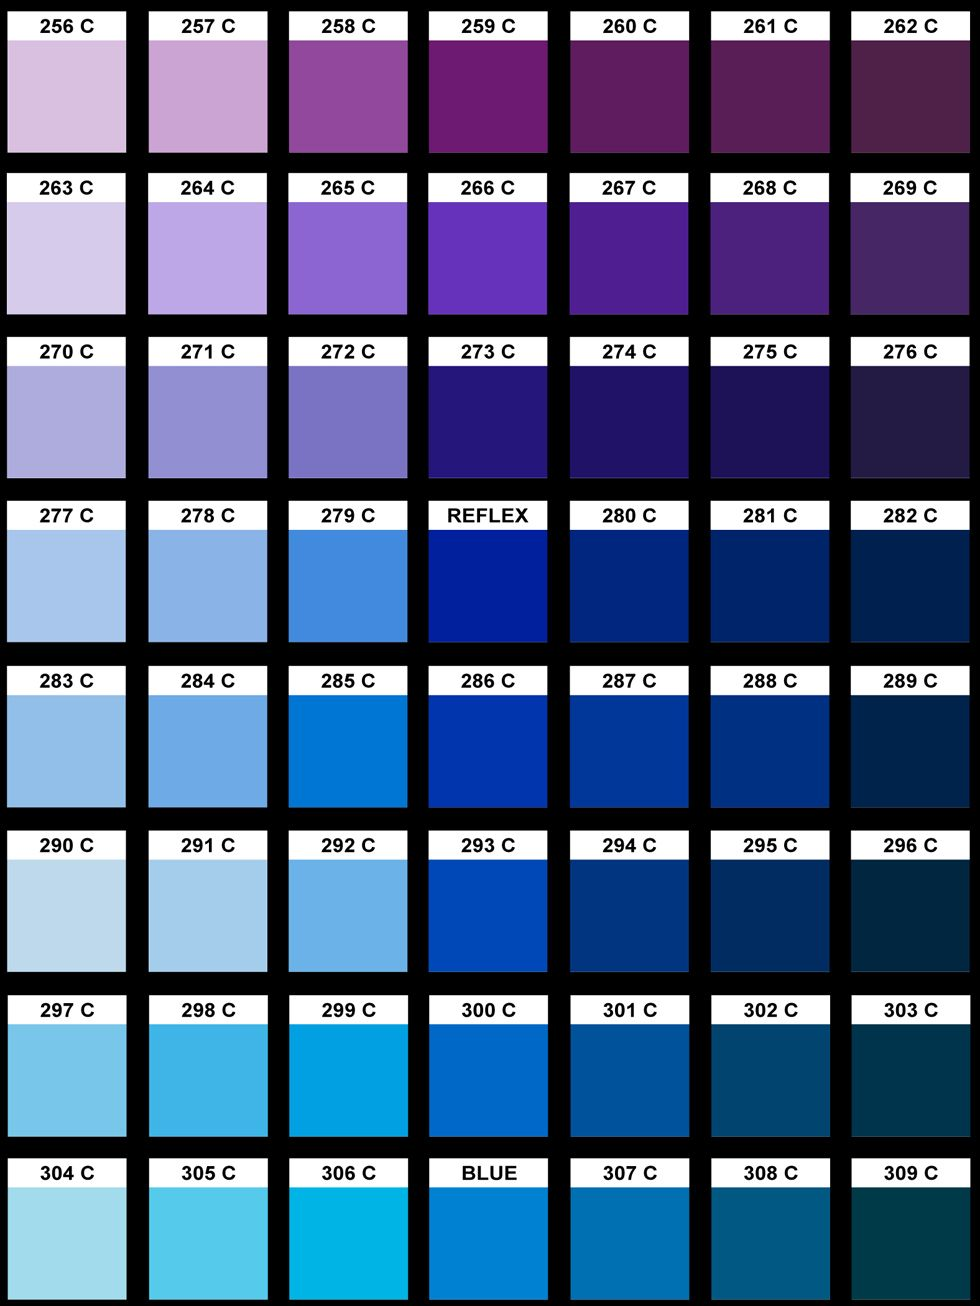 17 Best images about COLOR on Pinterest | Pantone color, Charts ...